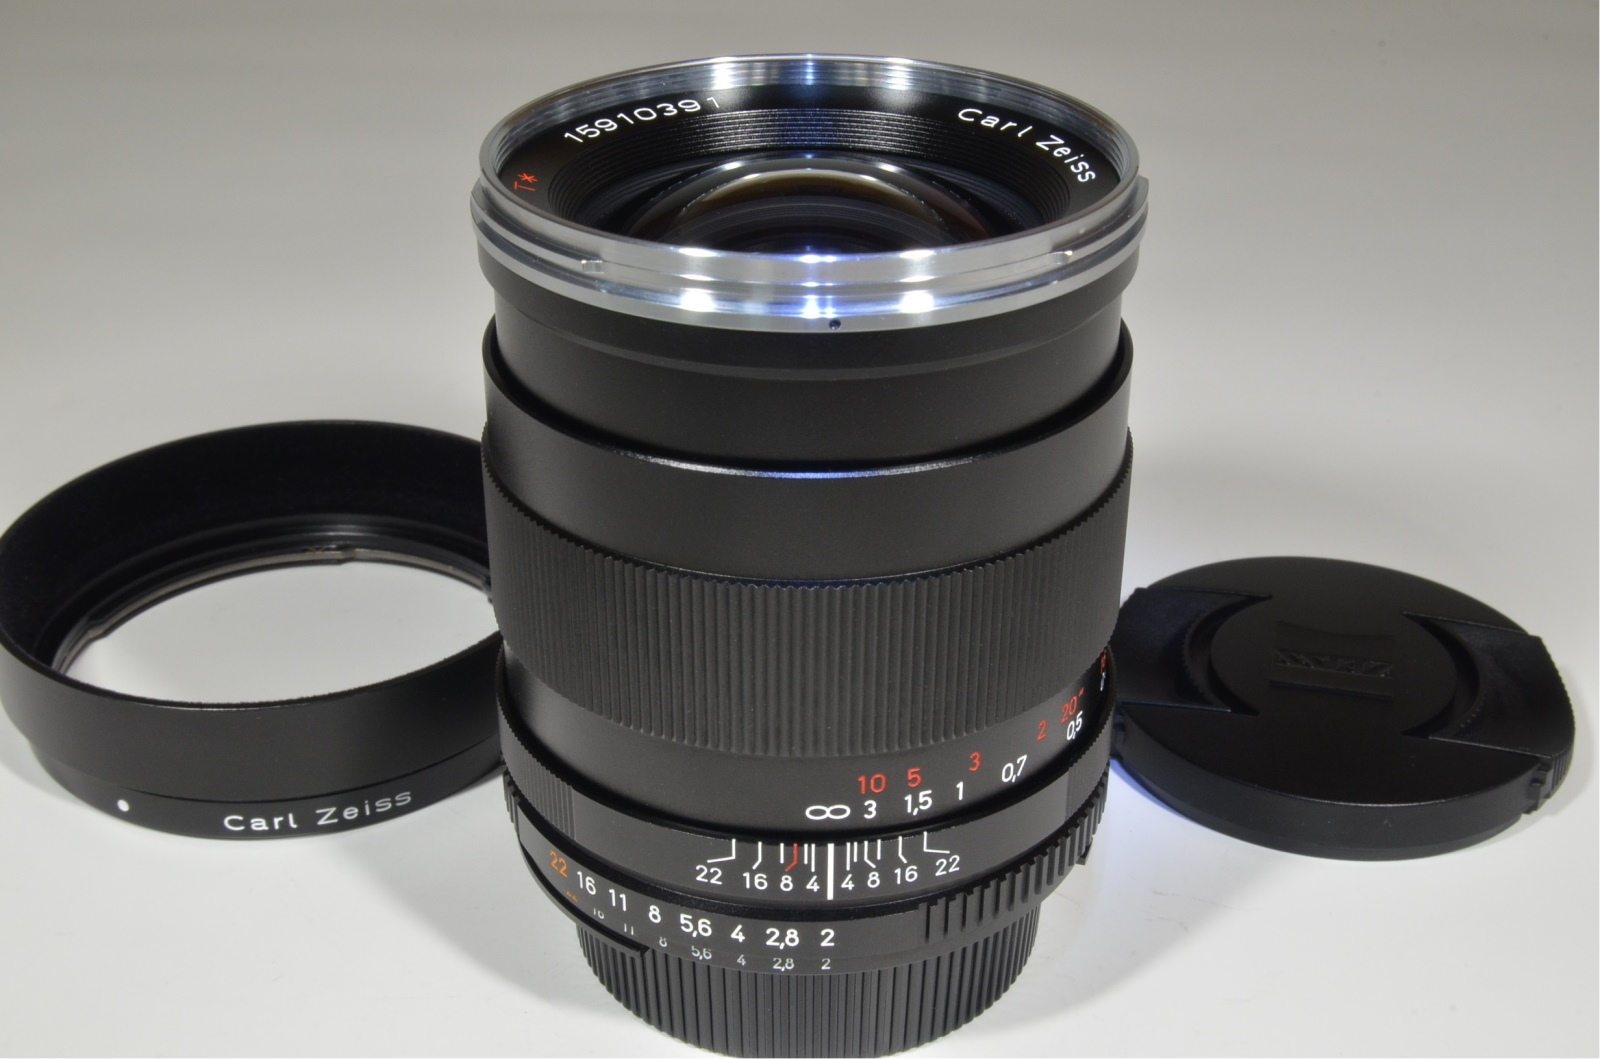 carl zeiss distagon t* 35mm f2 zf.2 for nikon